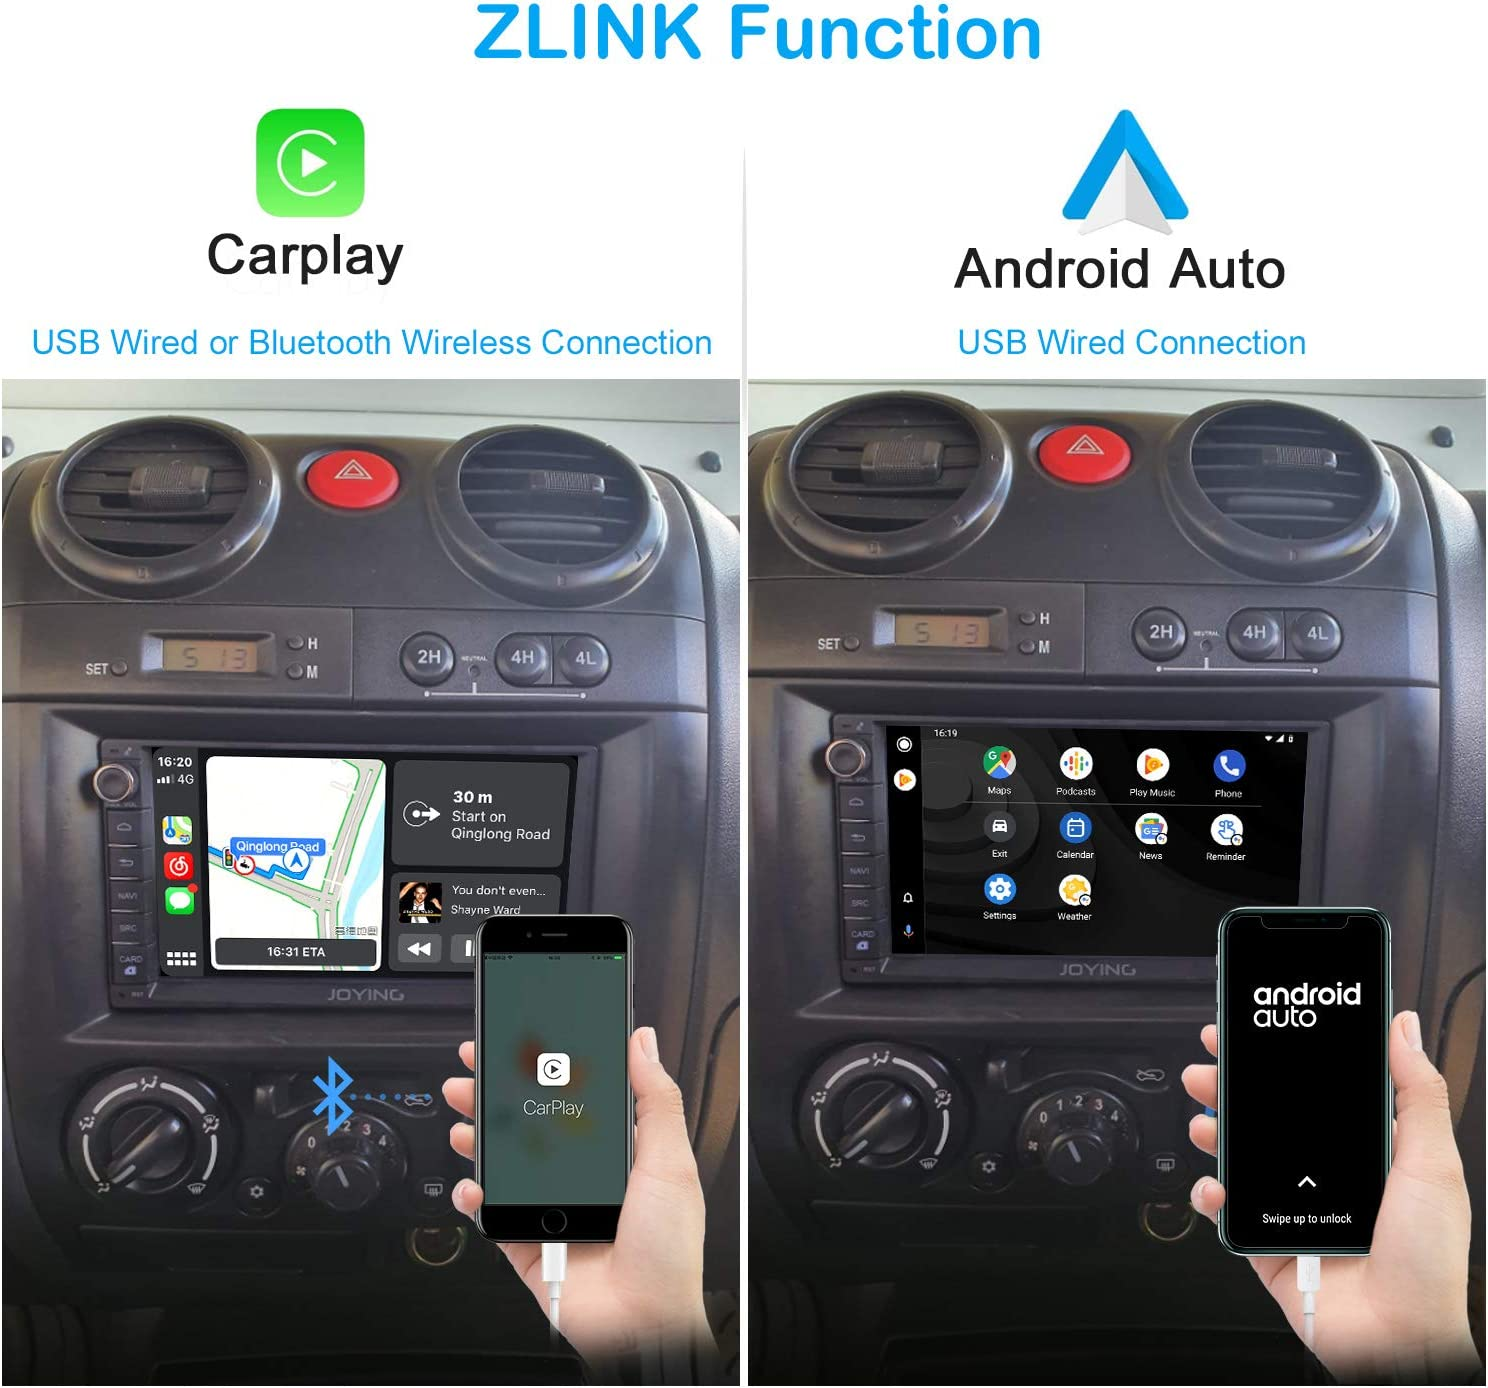 JOYING 7 Inch Touchscreen Double Din Car Stereo Android 10 Car Navigation in-Dash Car Audio Receiver Support Butoon 7-Color//4G SIM Card Slot//Android Auto//Zlink//DSP//SPDIF//FM Radio